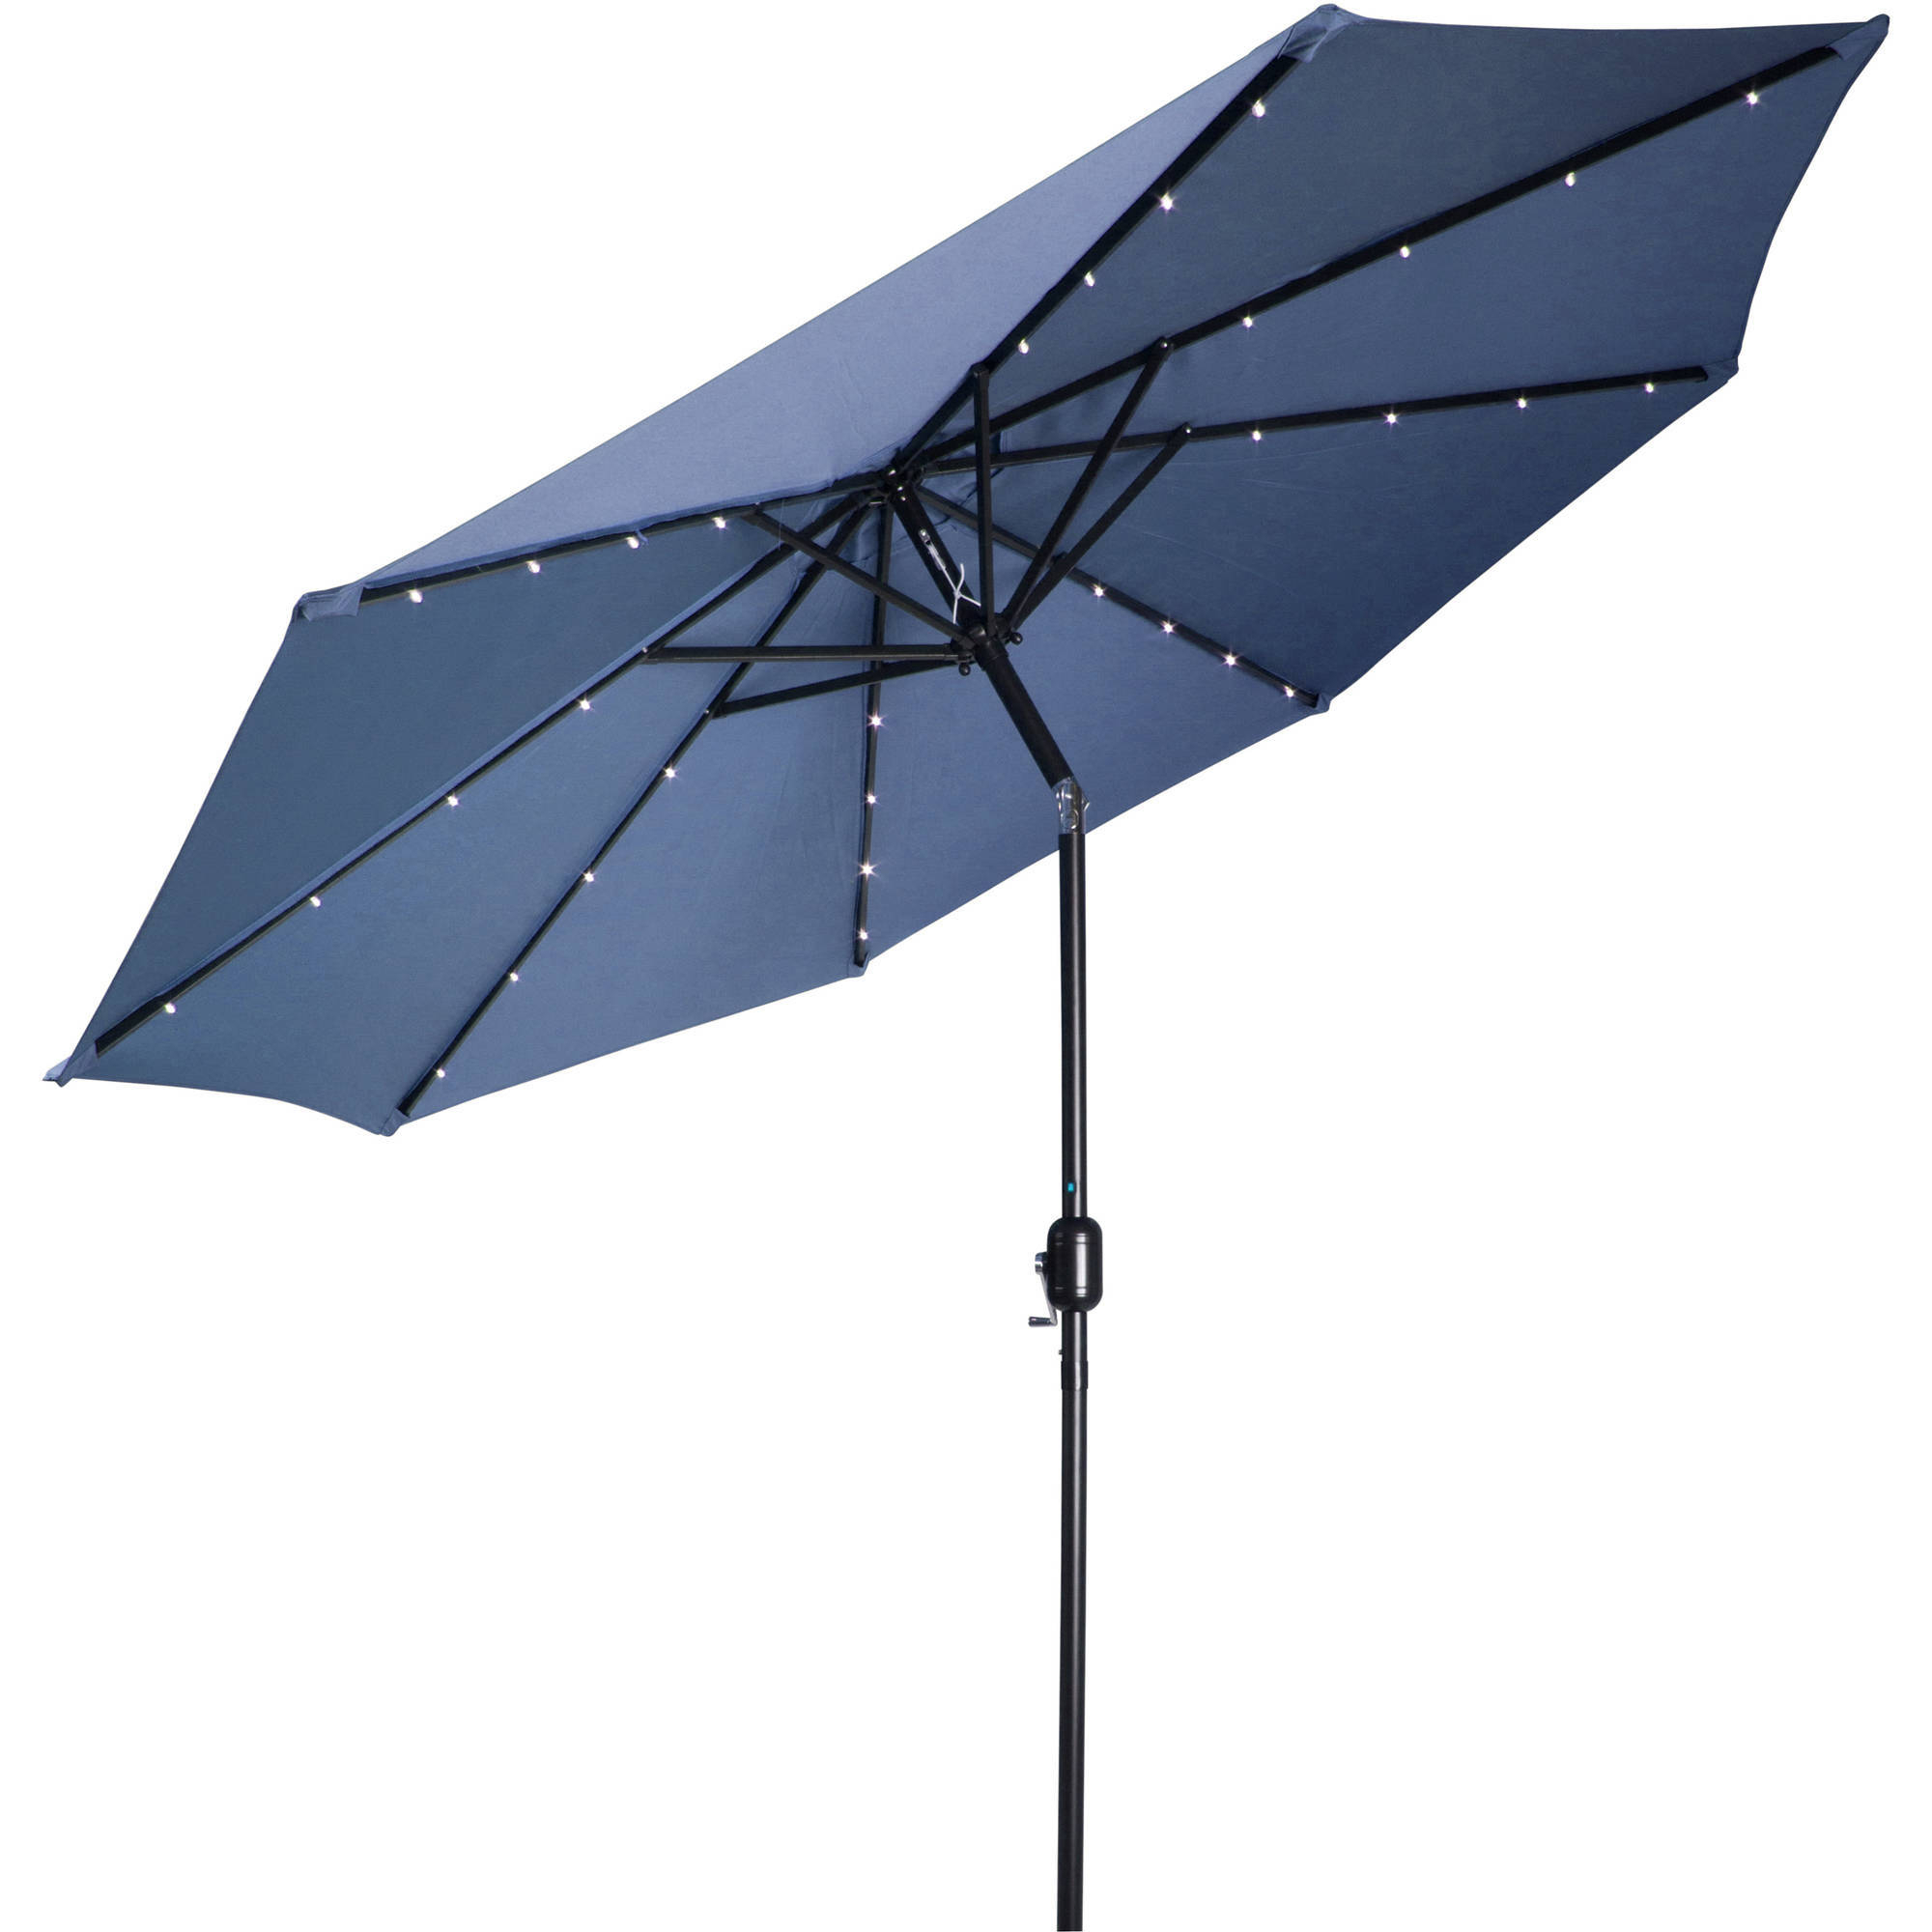 Fashionable 9' Deluxe Solar Powered Led Lighted Patio Umbrella, Tan Inside Solar Powered Led Patio Umbrellas (View 1 of 20)